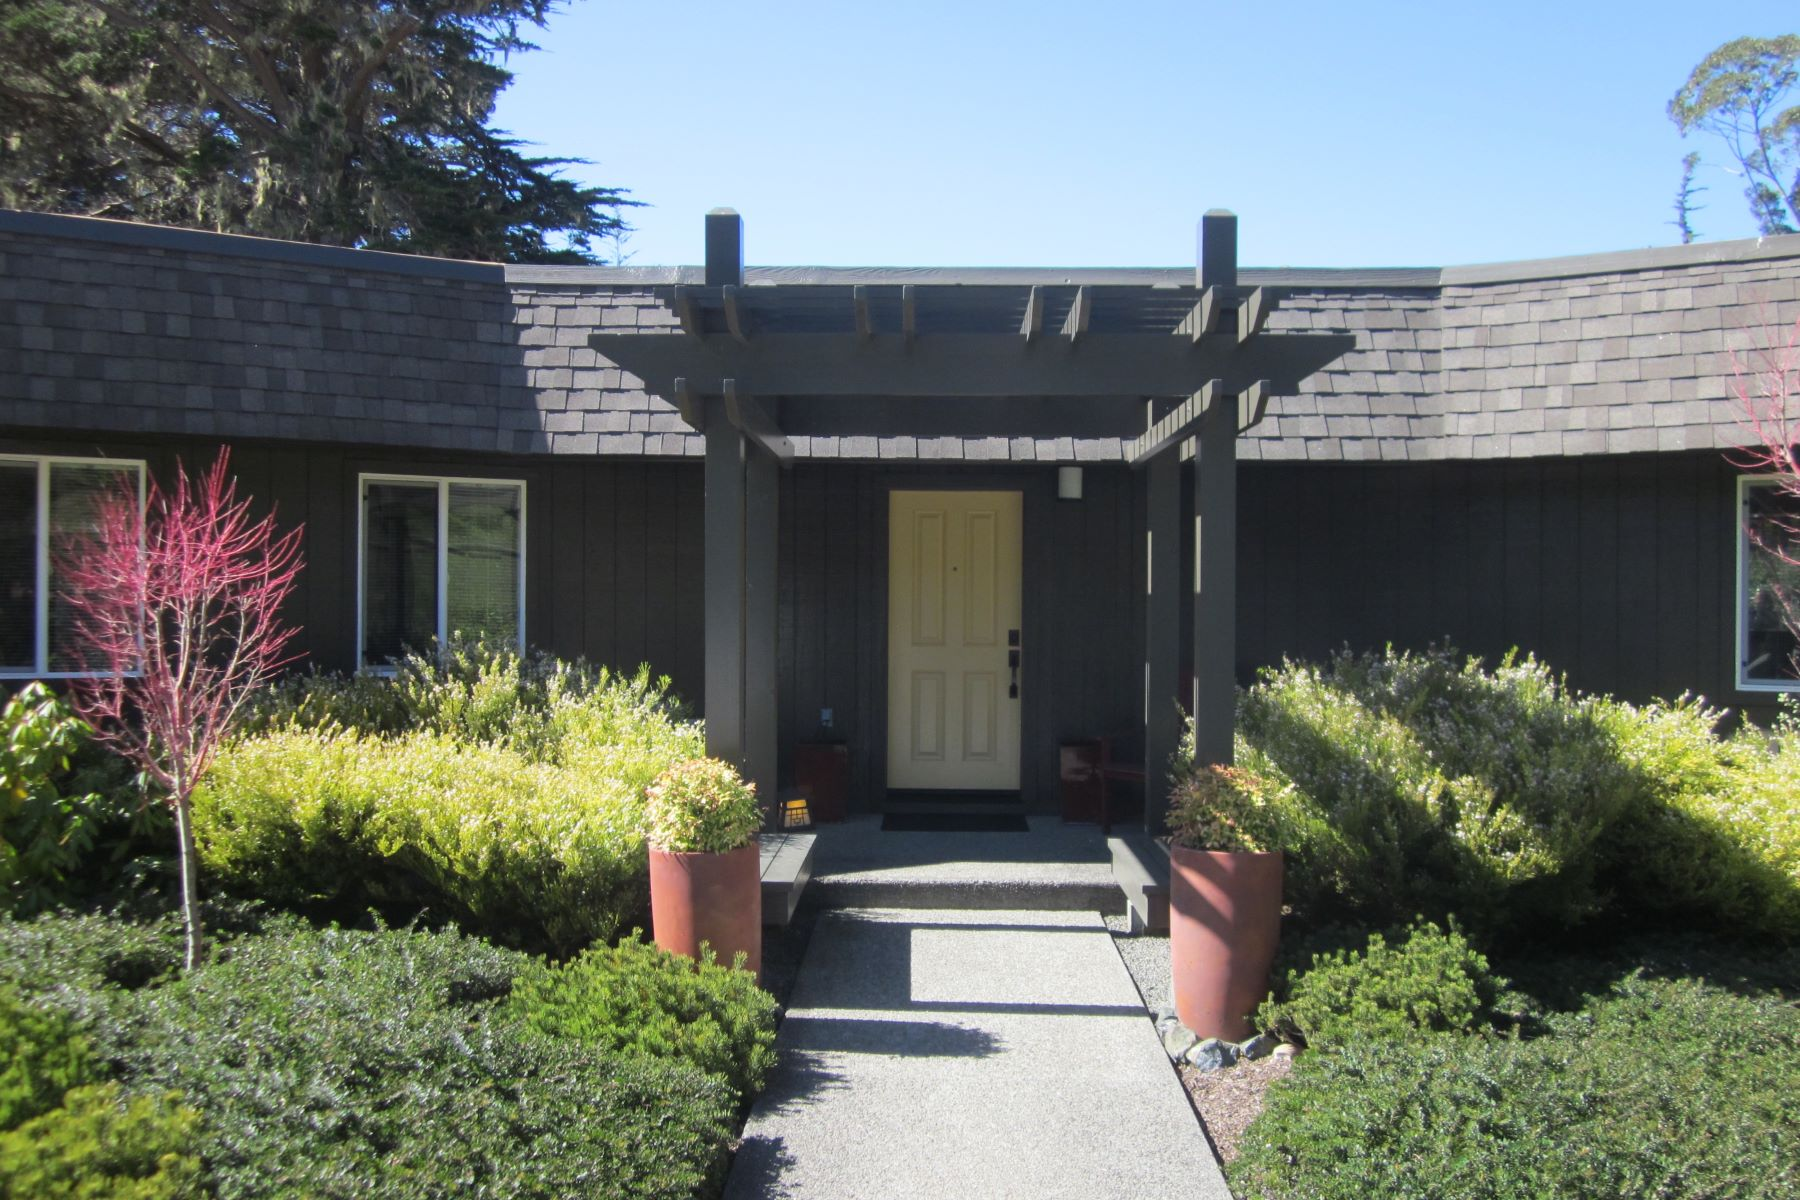 Single Family Home for Sale at Mendocino Surprise 44900 Baywood Drive Mendocino, California 95460 United States